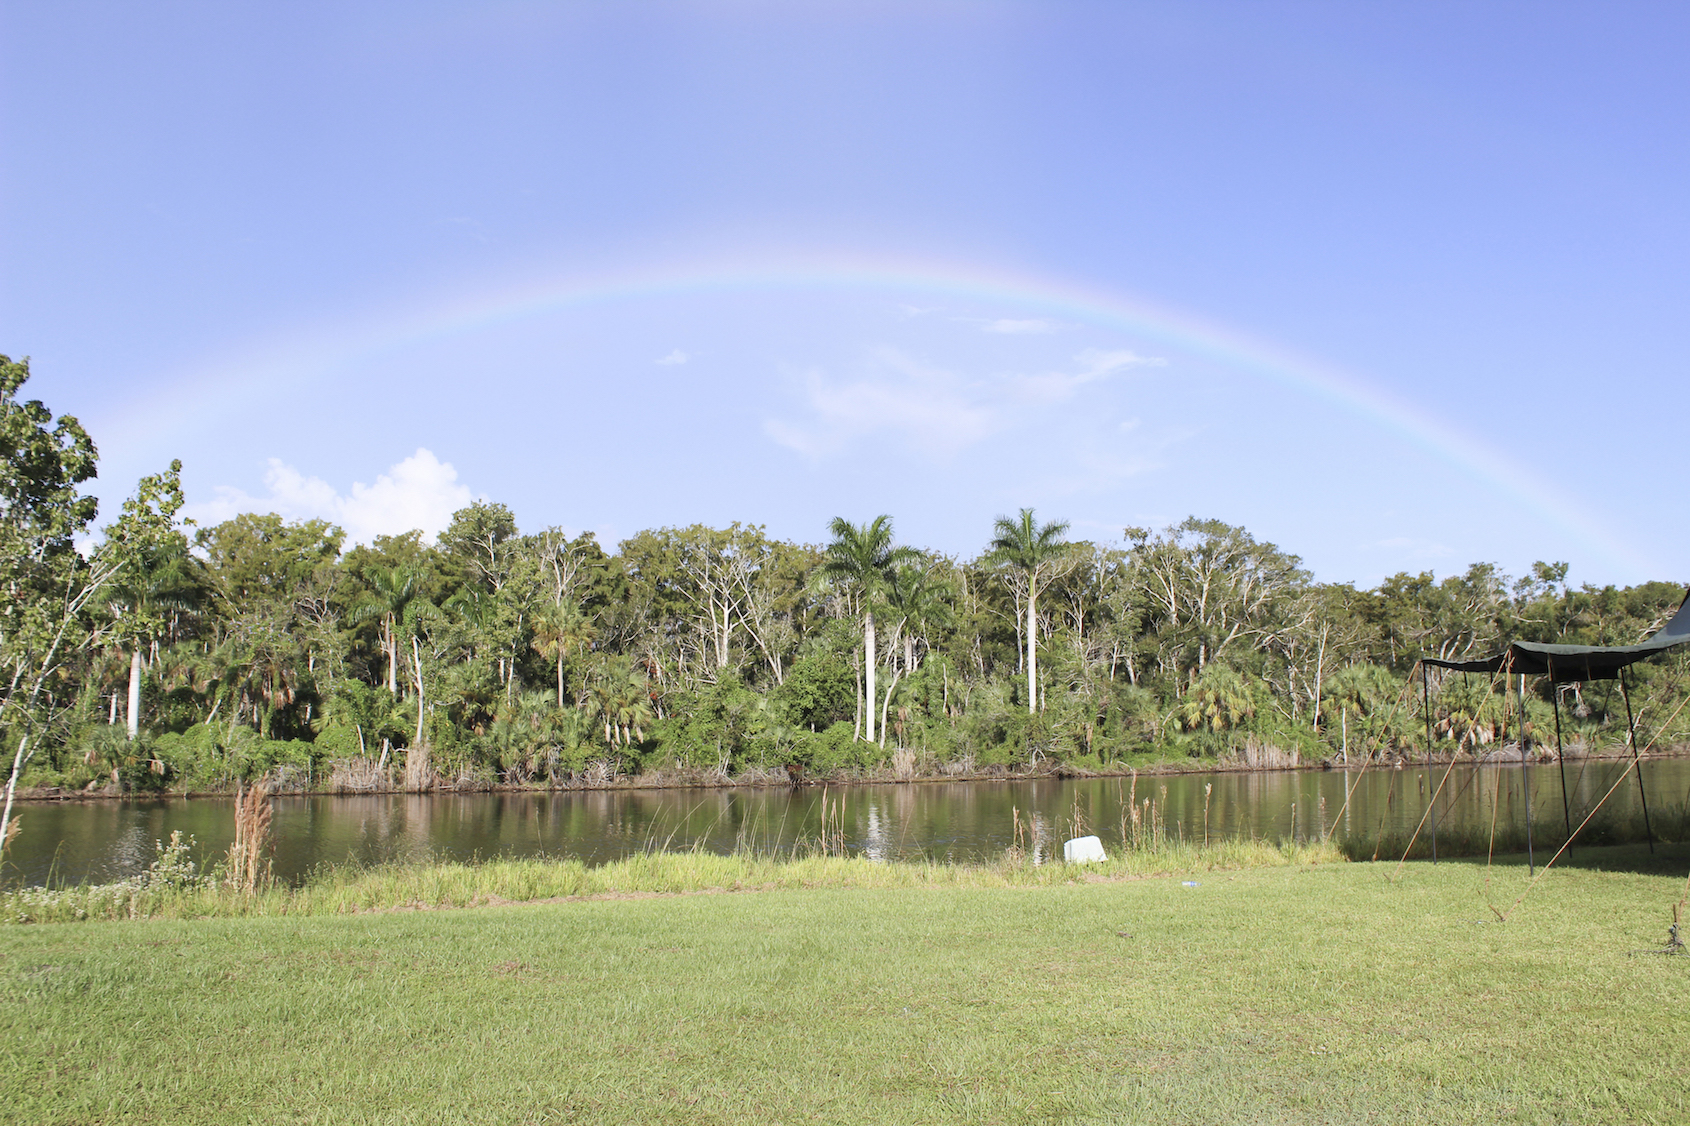 A full rainbow over the canal here at Gulf Coast Clays gun range